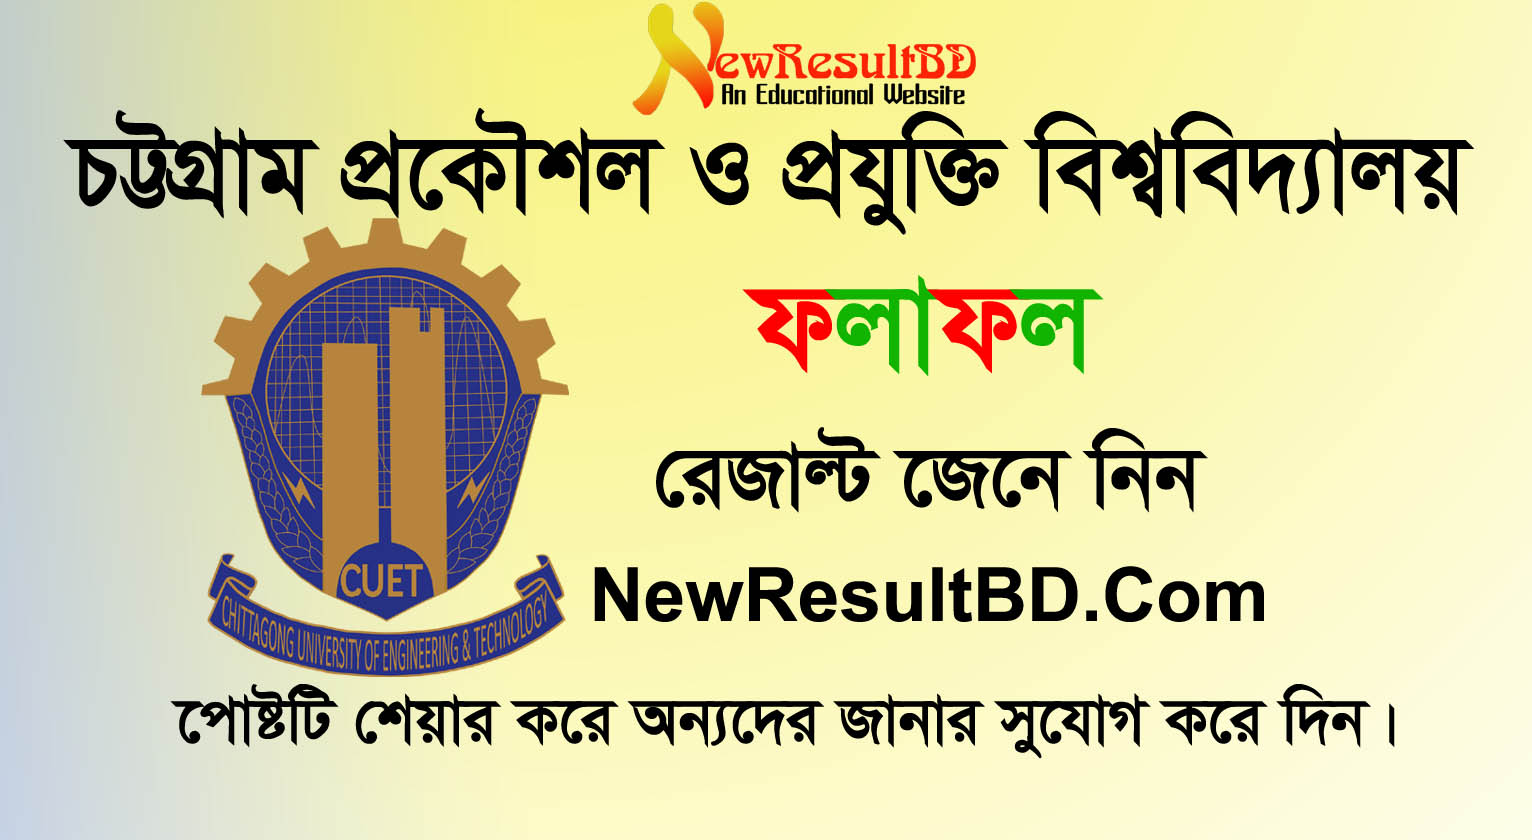 Chittagong University of Engineering & Technology (CUET) Admission Test Result 2019-20